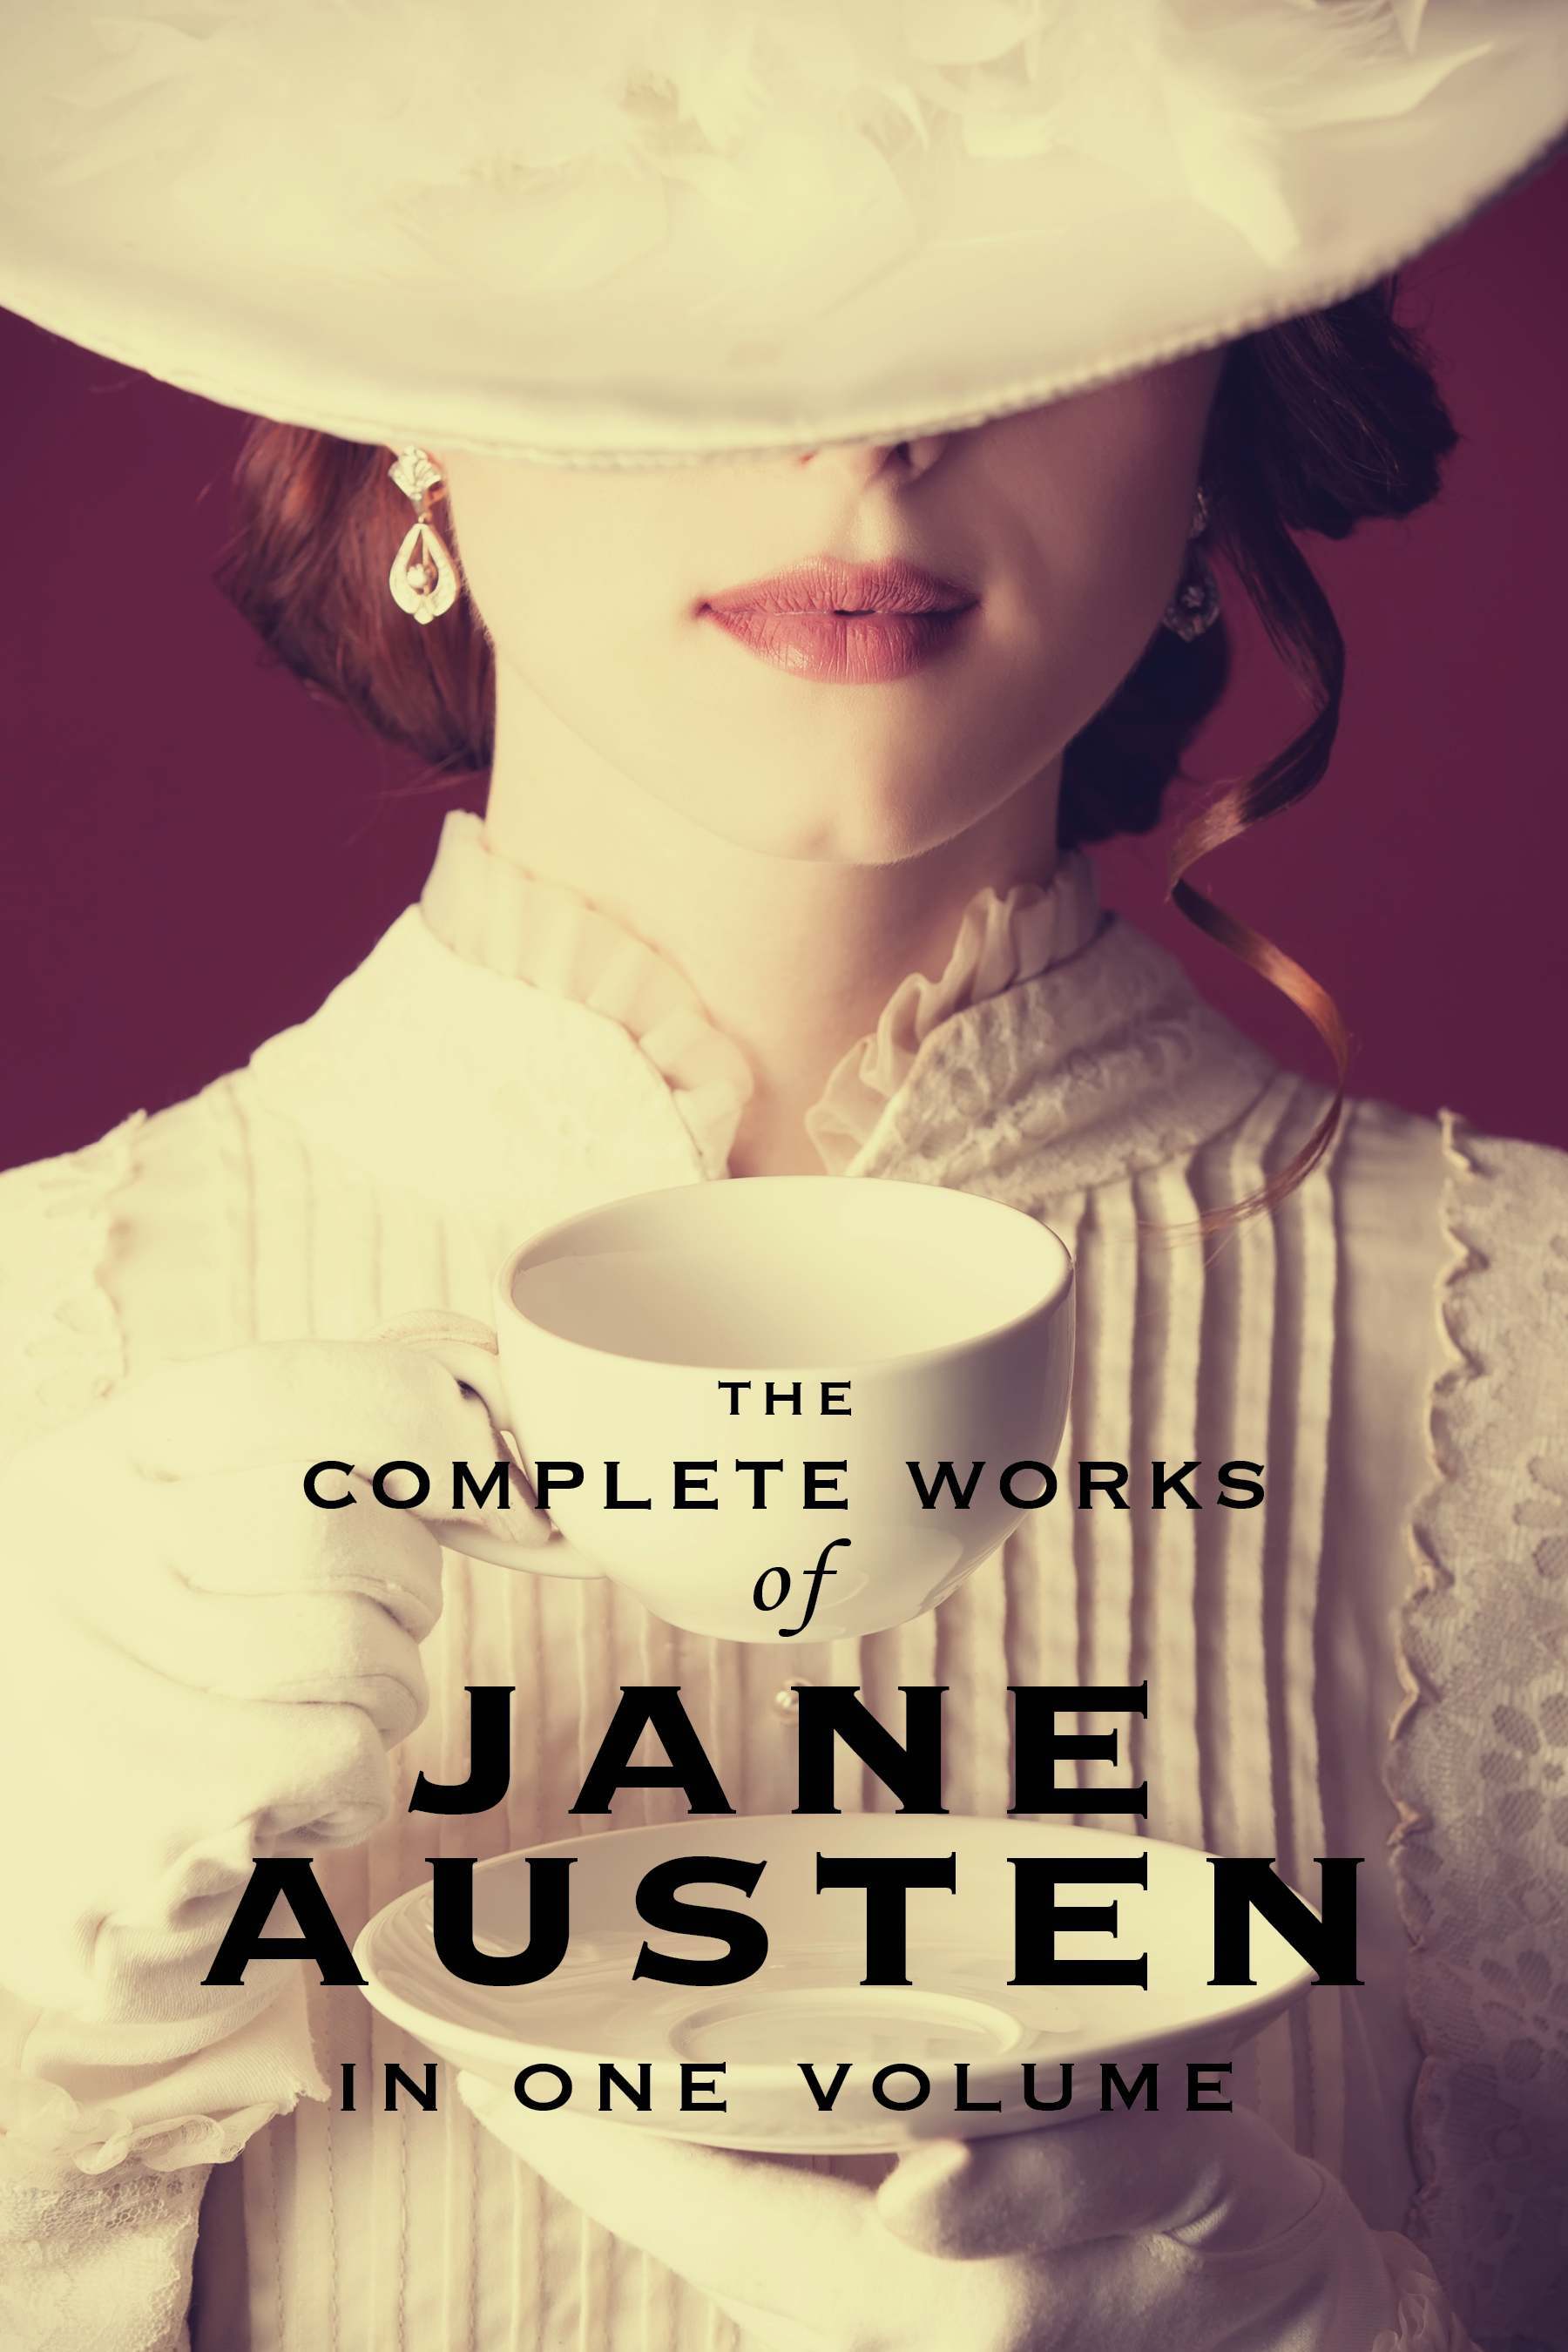 The Complete Works of Jane Austen (In One Volume) Sense and Sensibility, Pride and Prejudice, Mansfield Park, Emma, Northanger Abbey, Persuasion, Lady Susan, The Watson's, Sandition, and the Complete Juvenilia